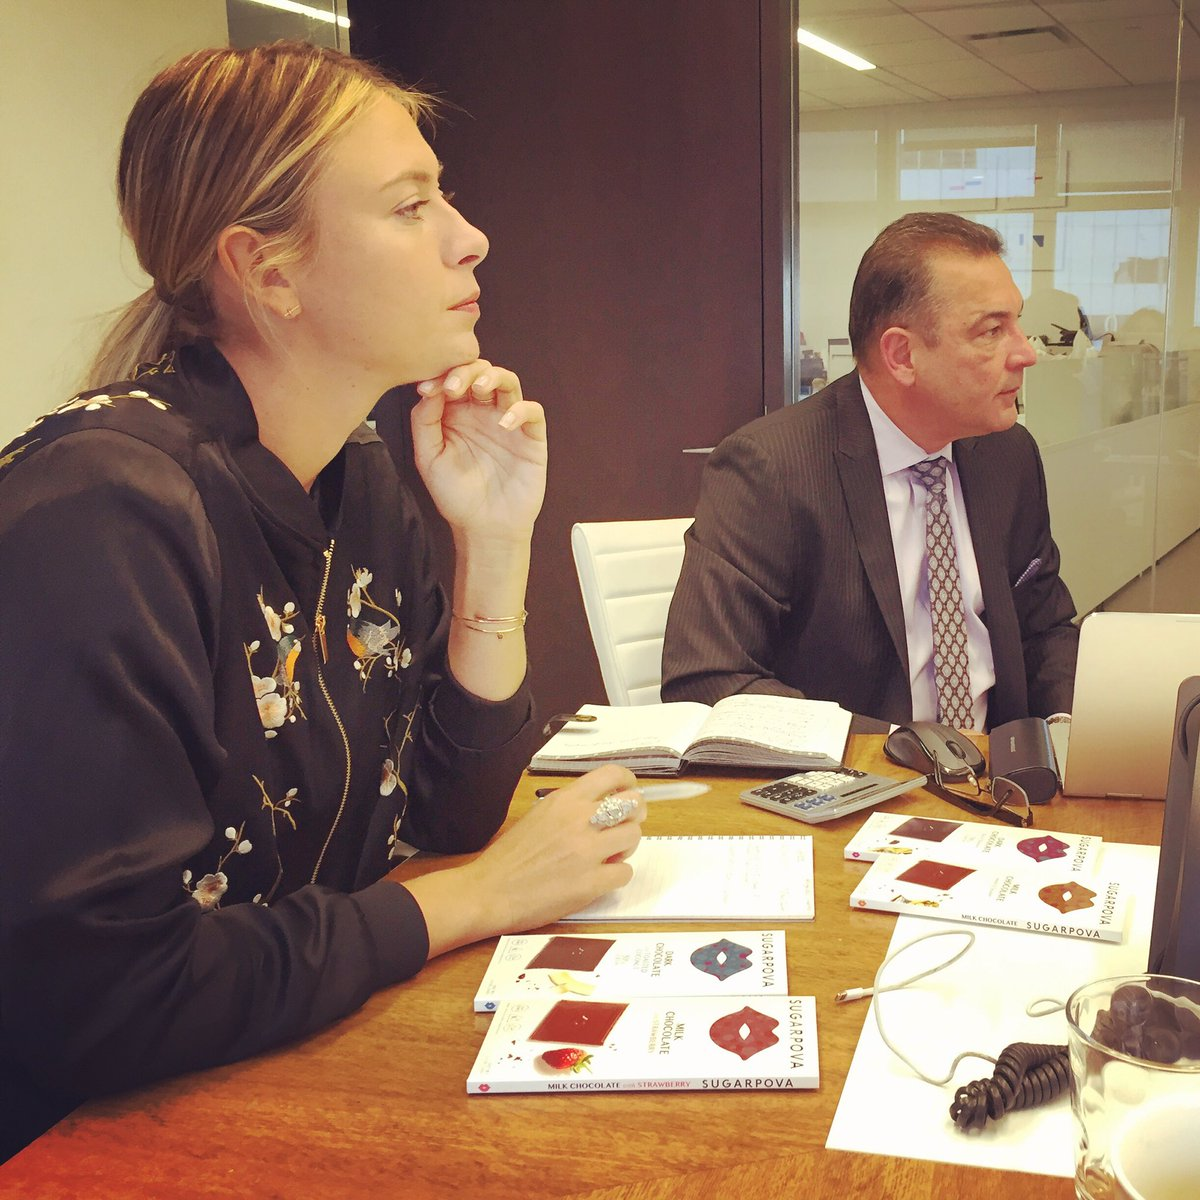 Being all serious at today's @Sugarpova meetings. ???? Our very first Chocolate bars coming out this month. ???????? https://t.co/Vy4l8zoxFn